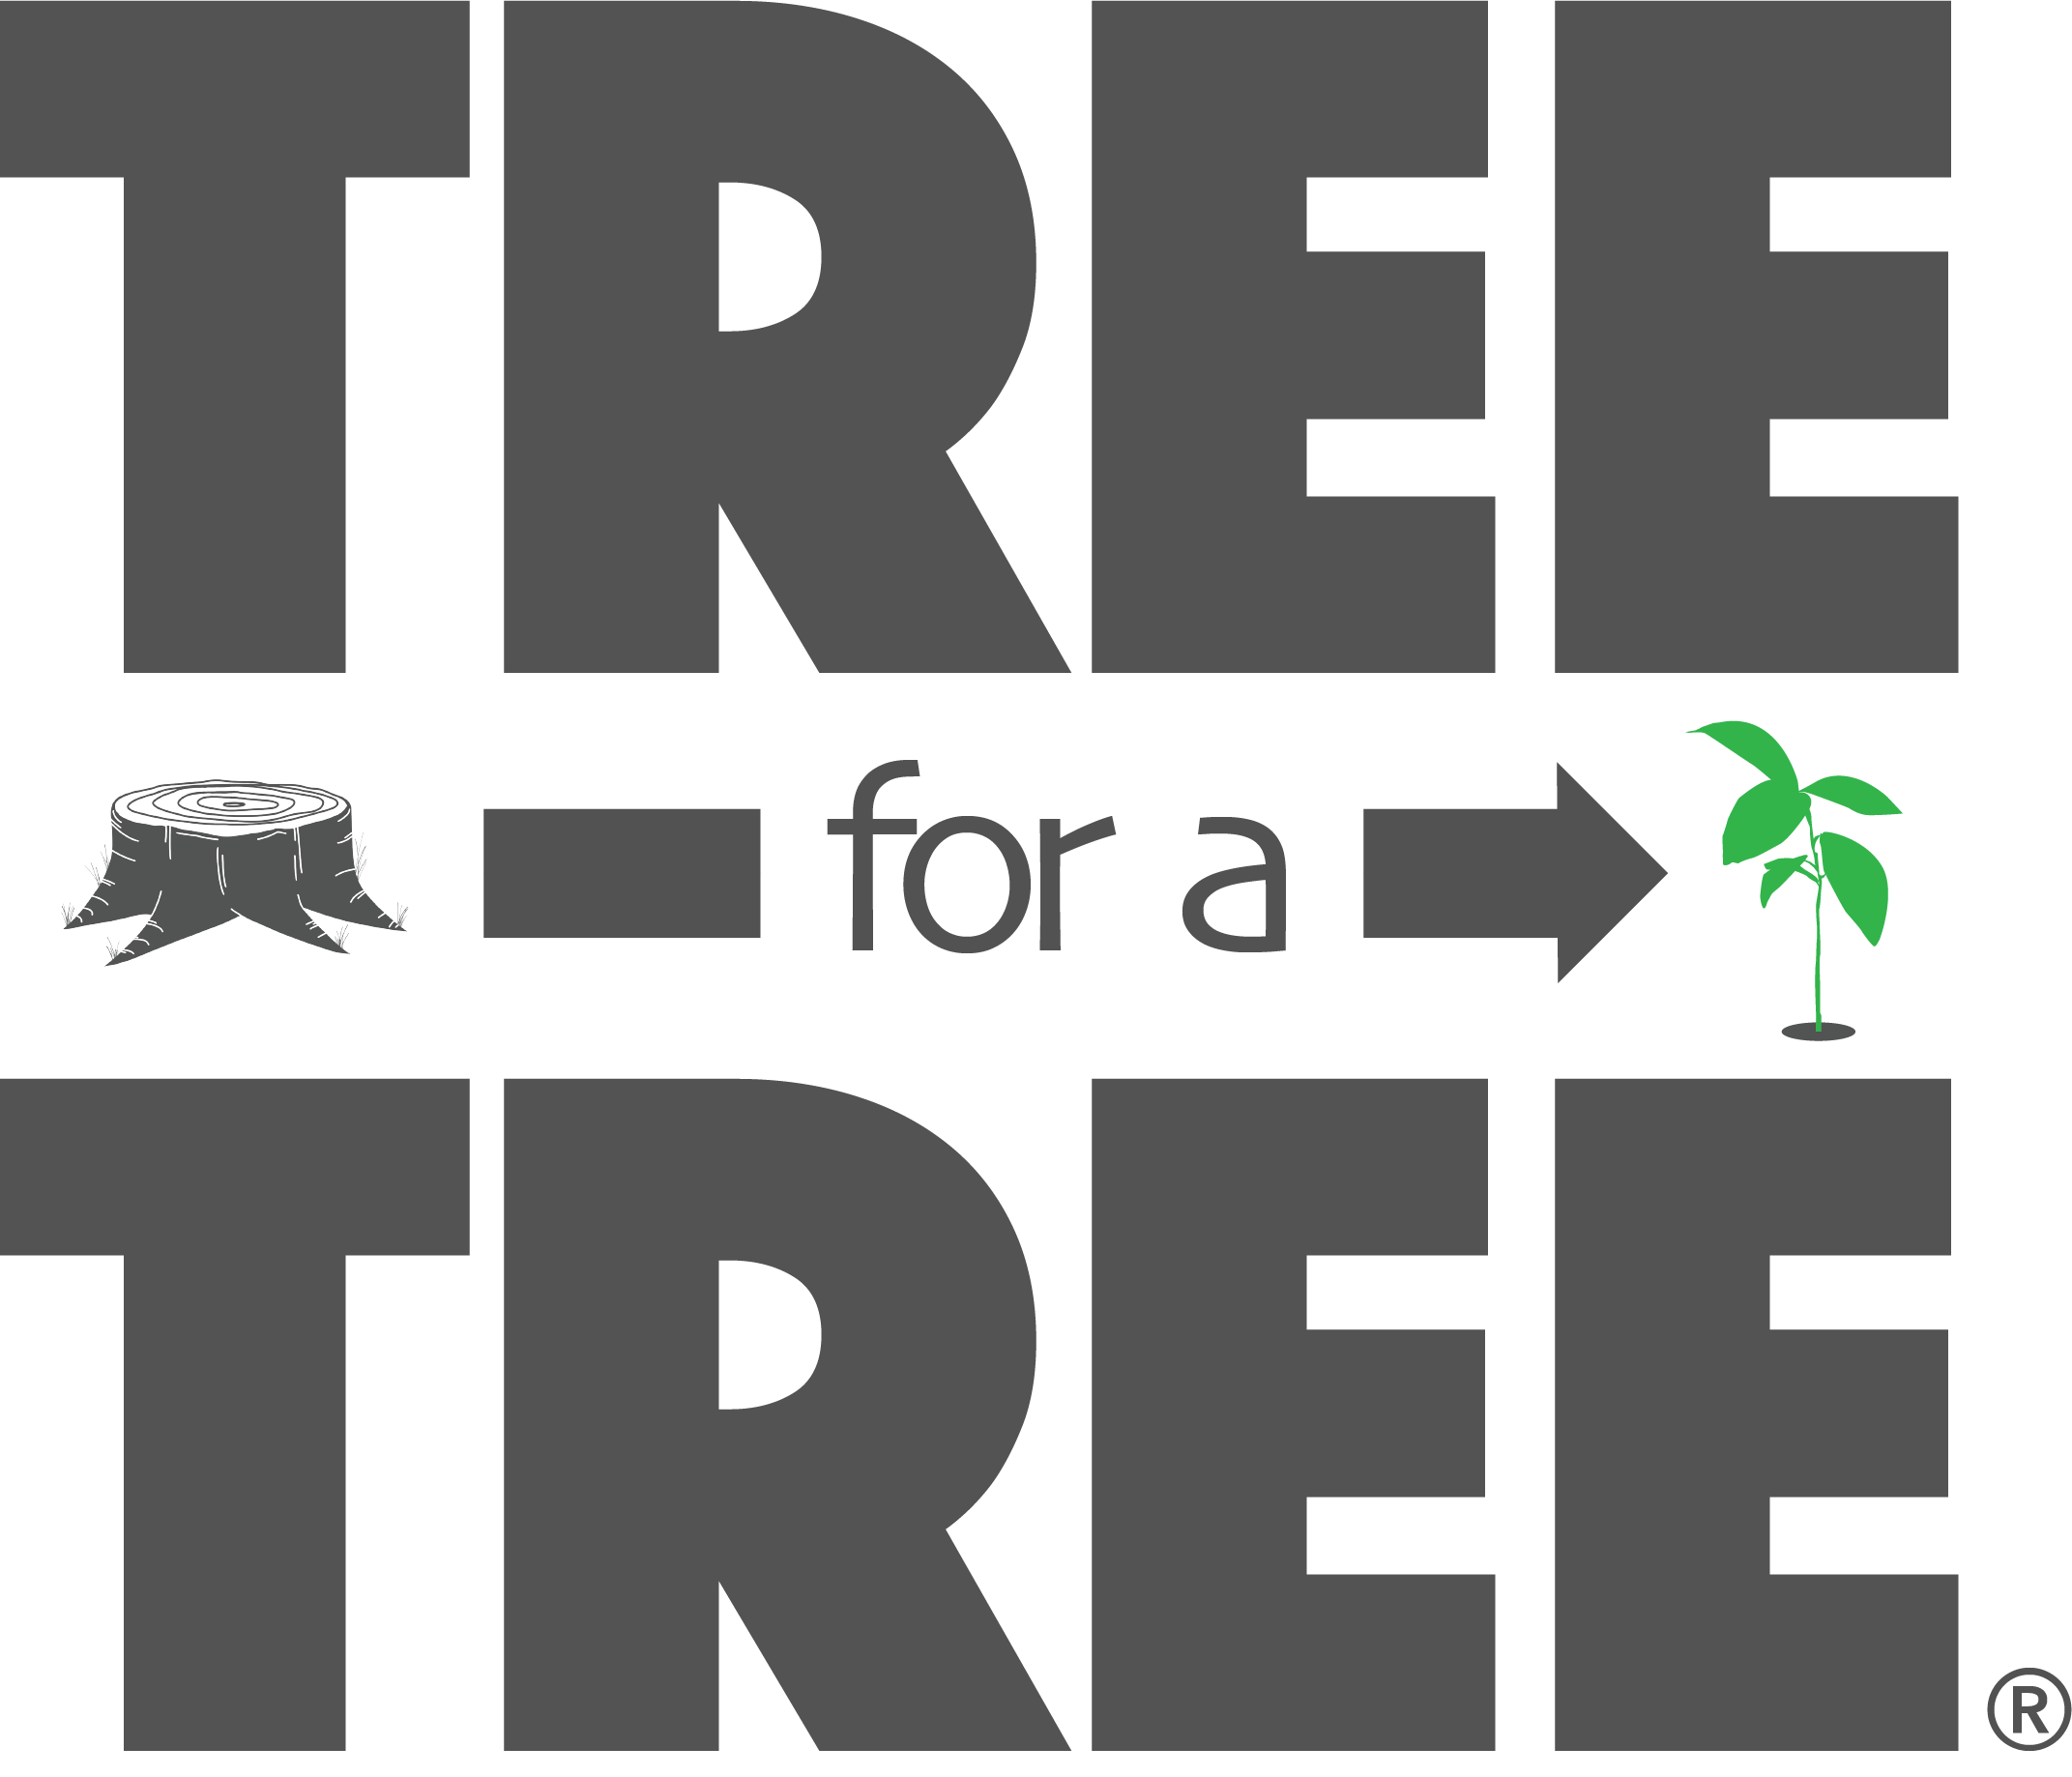 tree-for-a-tree-primary-wo.png